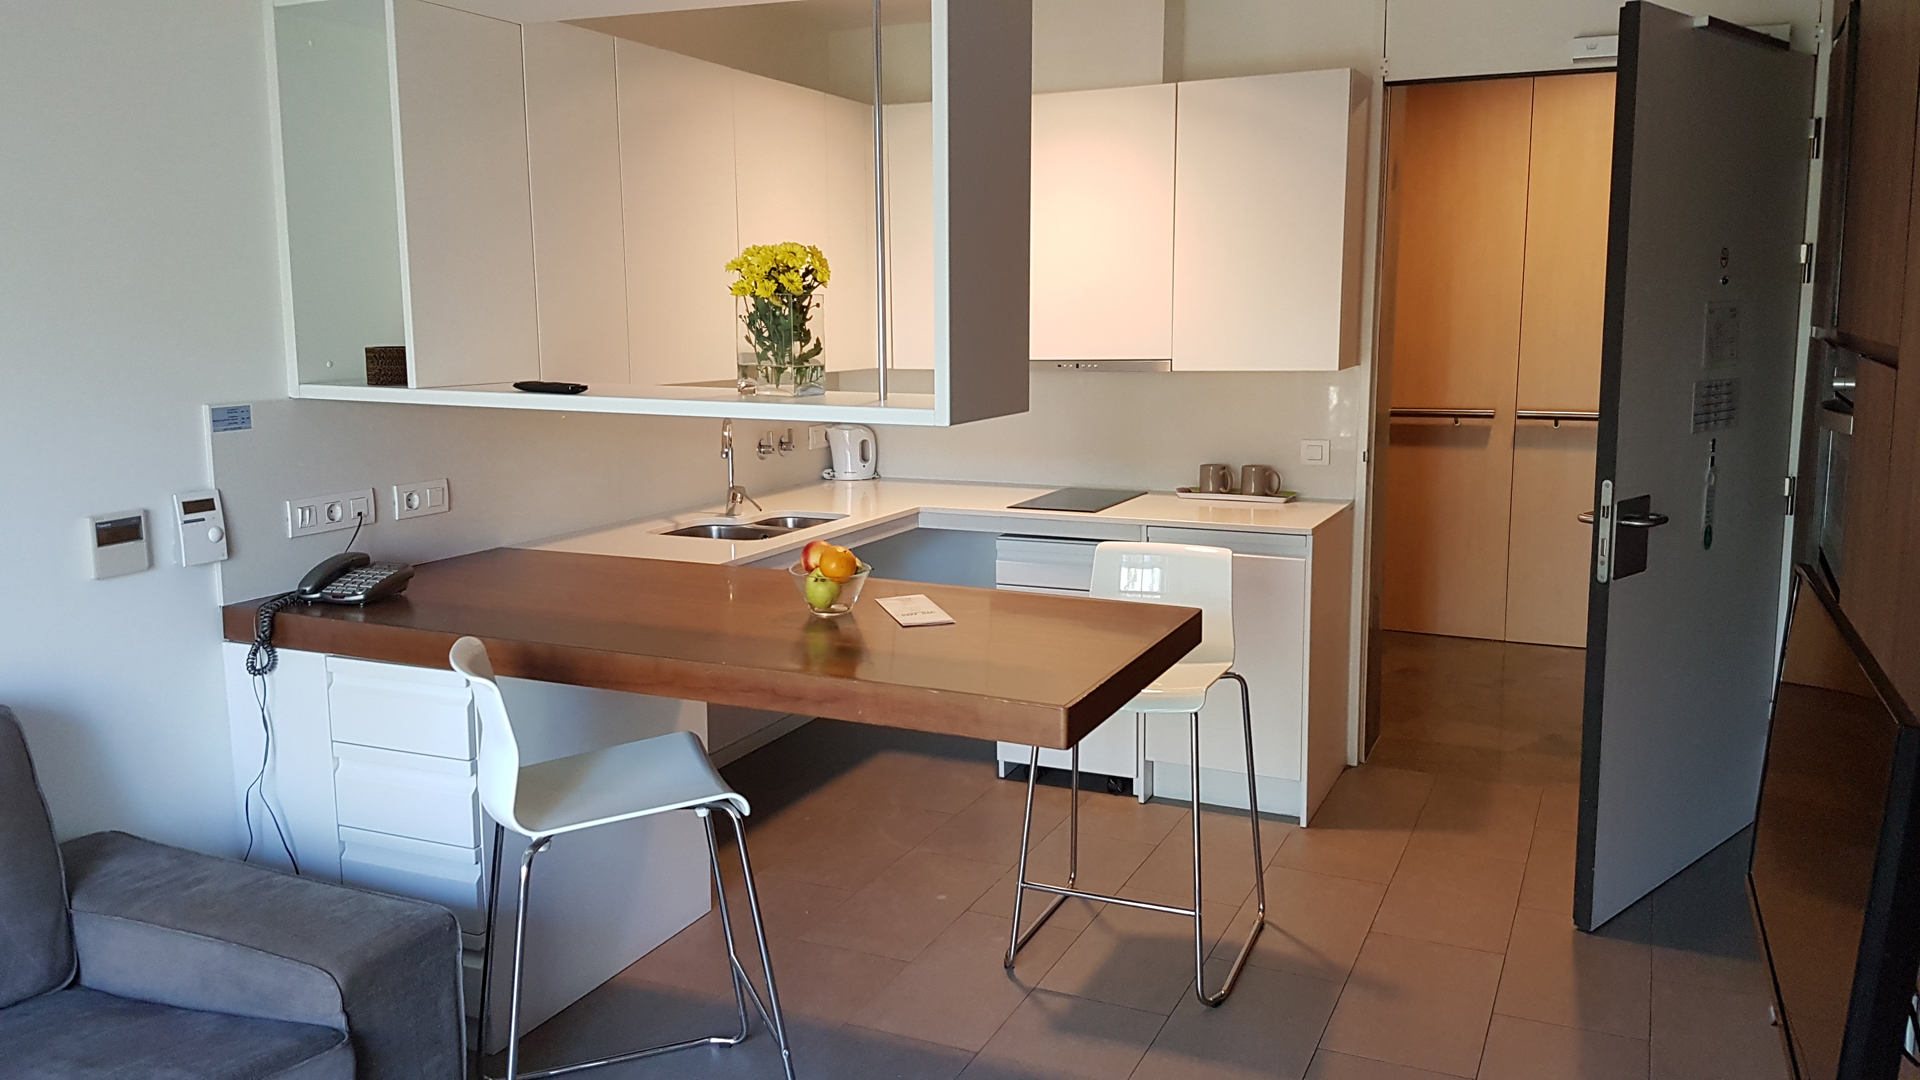 mics-sant-jordi-apartment-kitchen-living-area